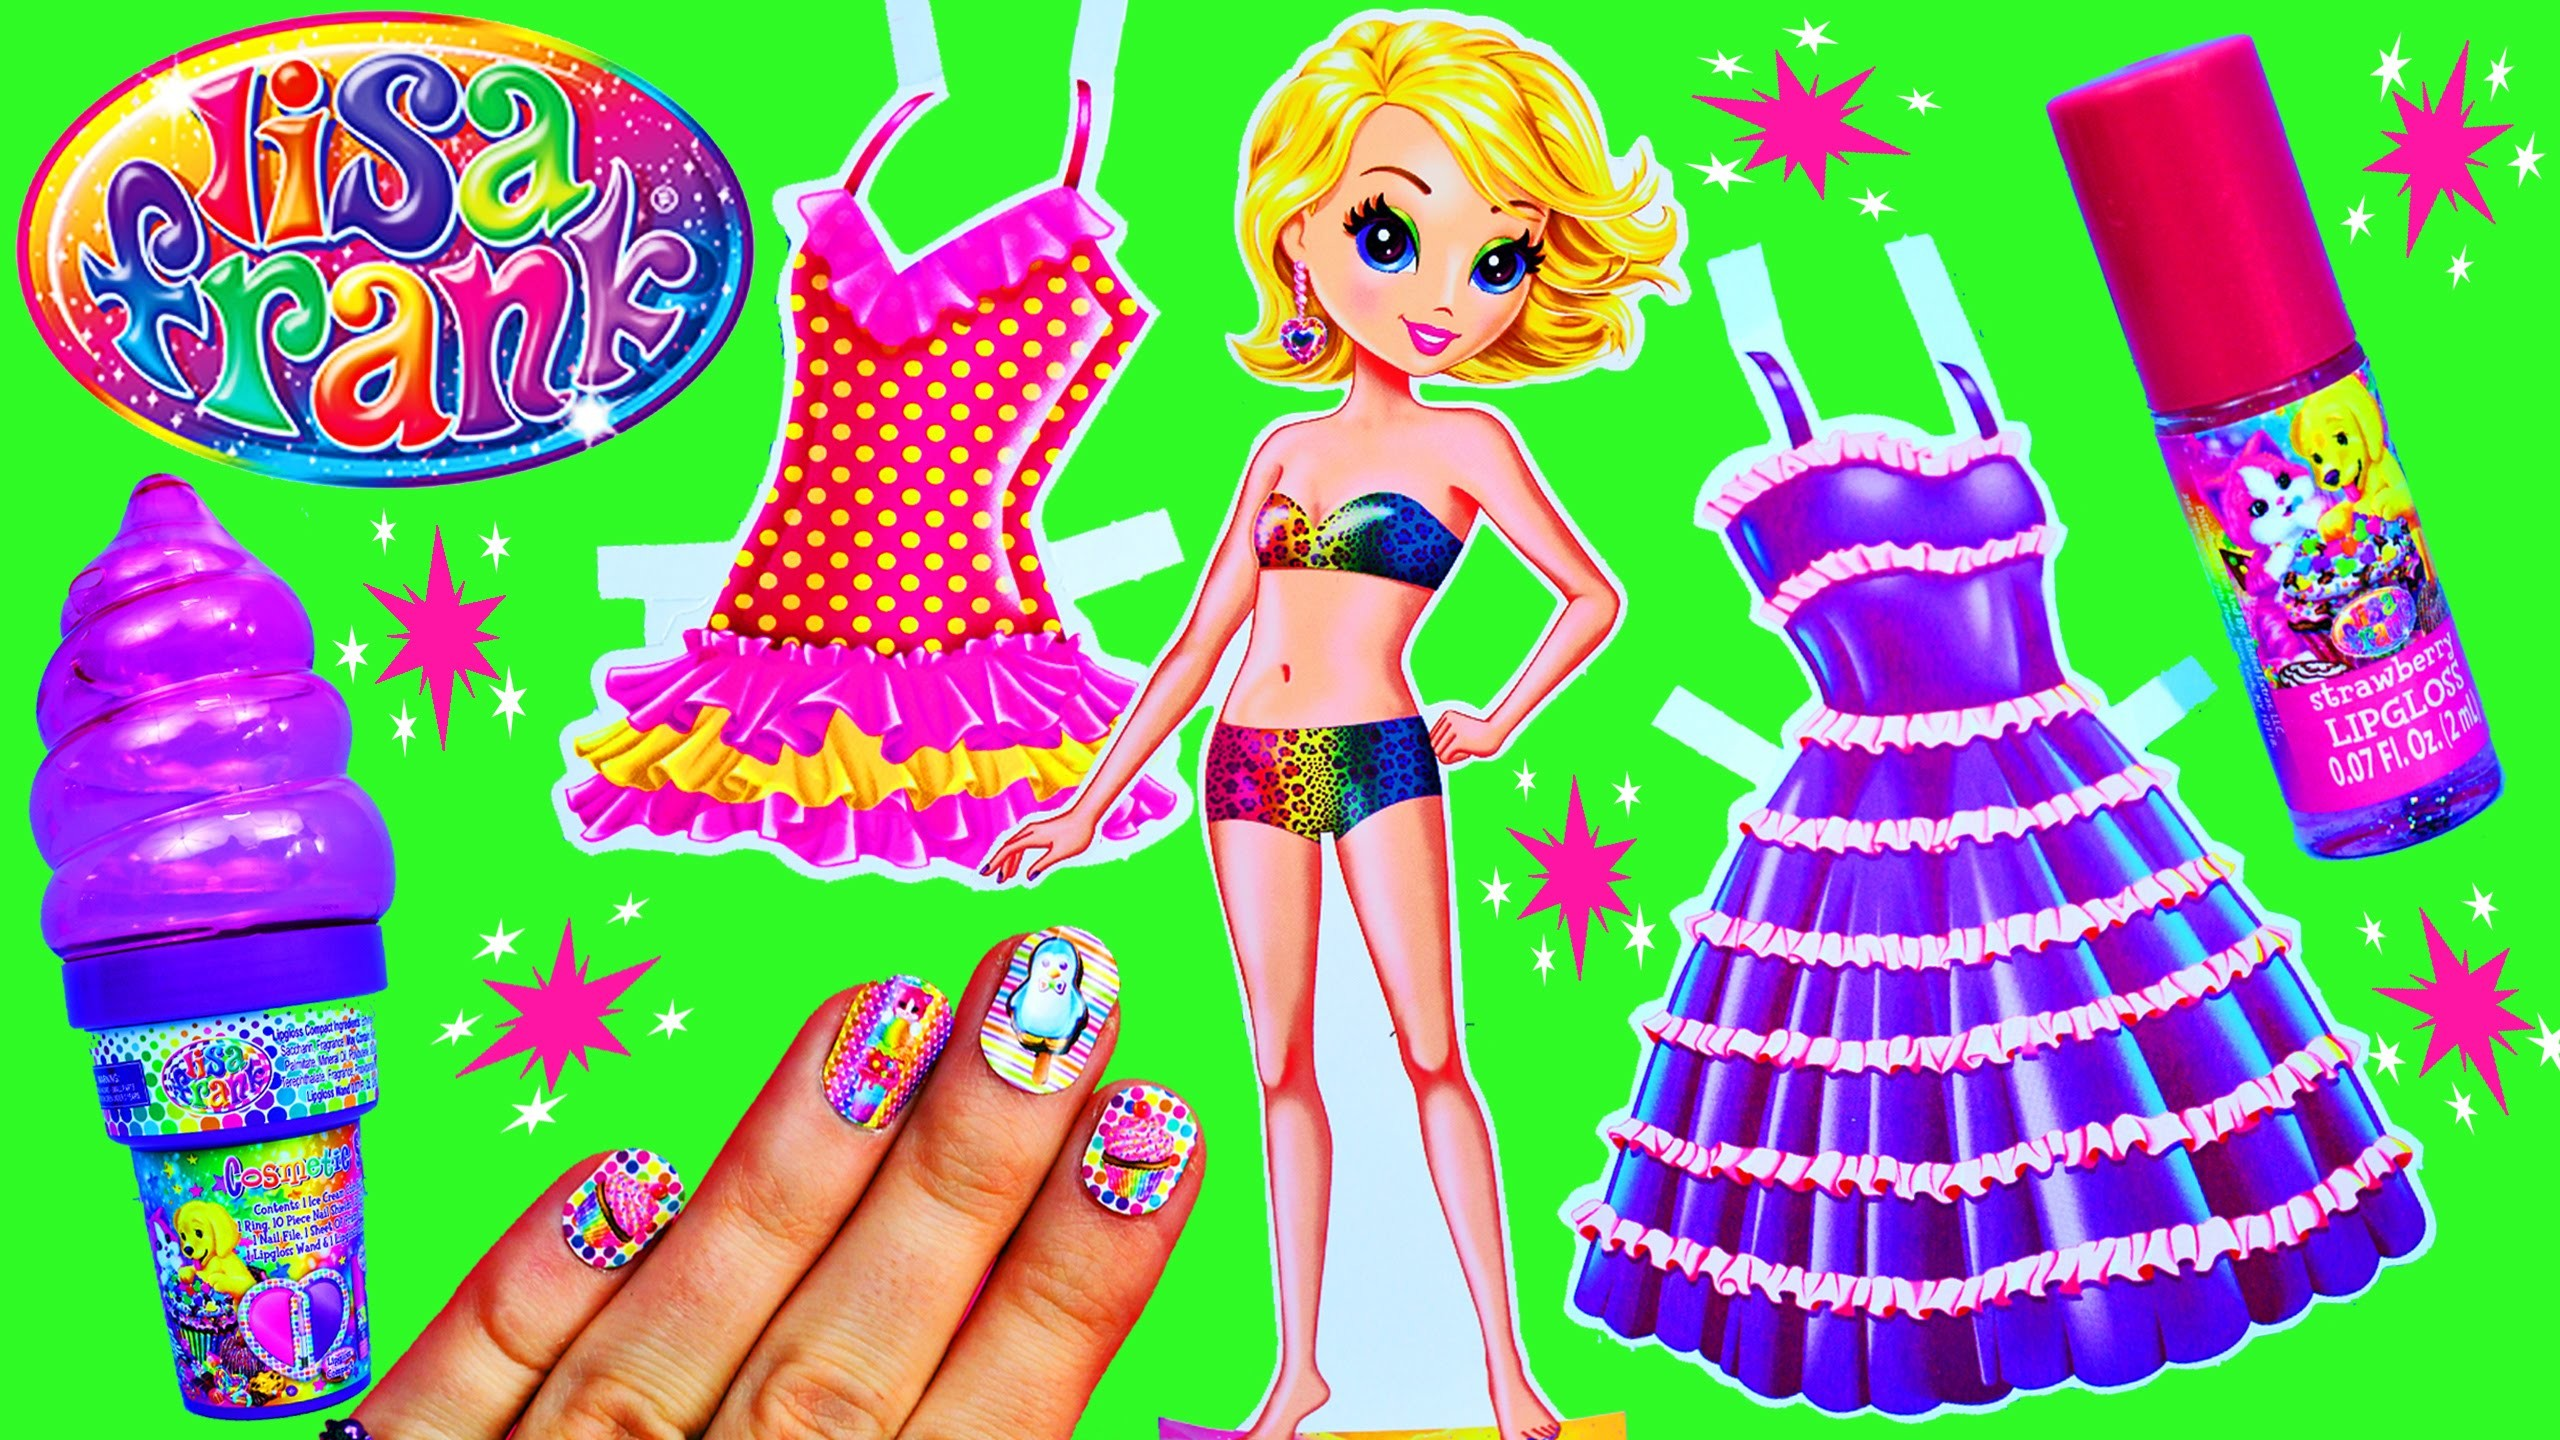 LISA FRANK Toys Paper Dolls Dress-Up Stickers & Surprise Ice Cream Cone  Makeup Cosmetics & Lip Gloss – YouTube